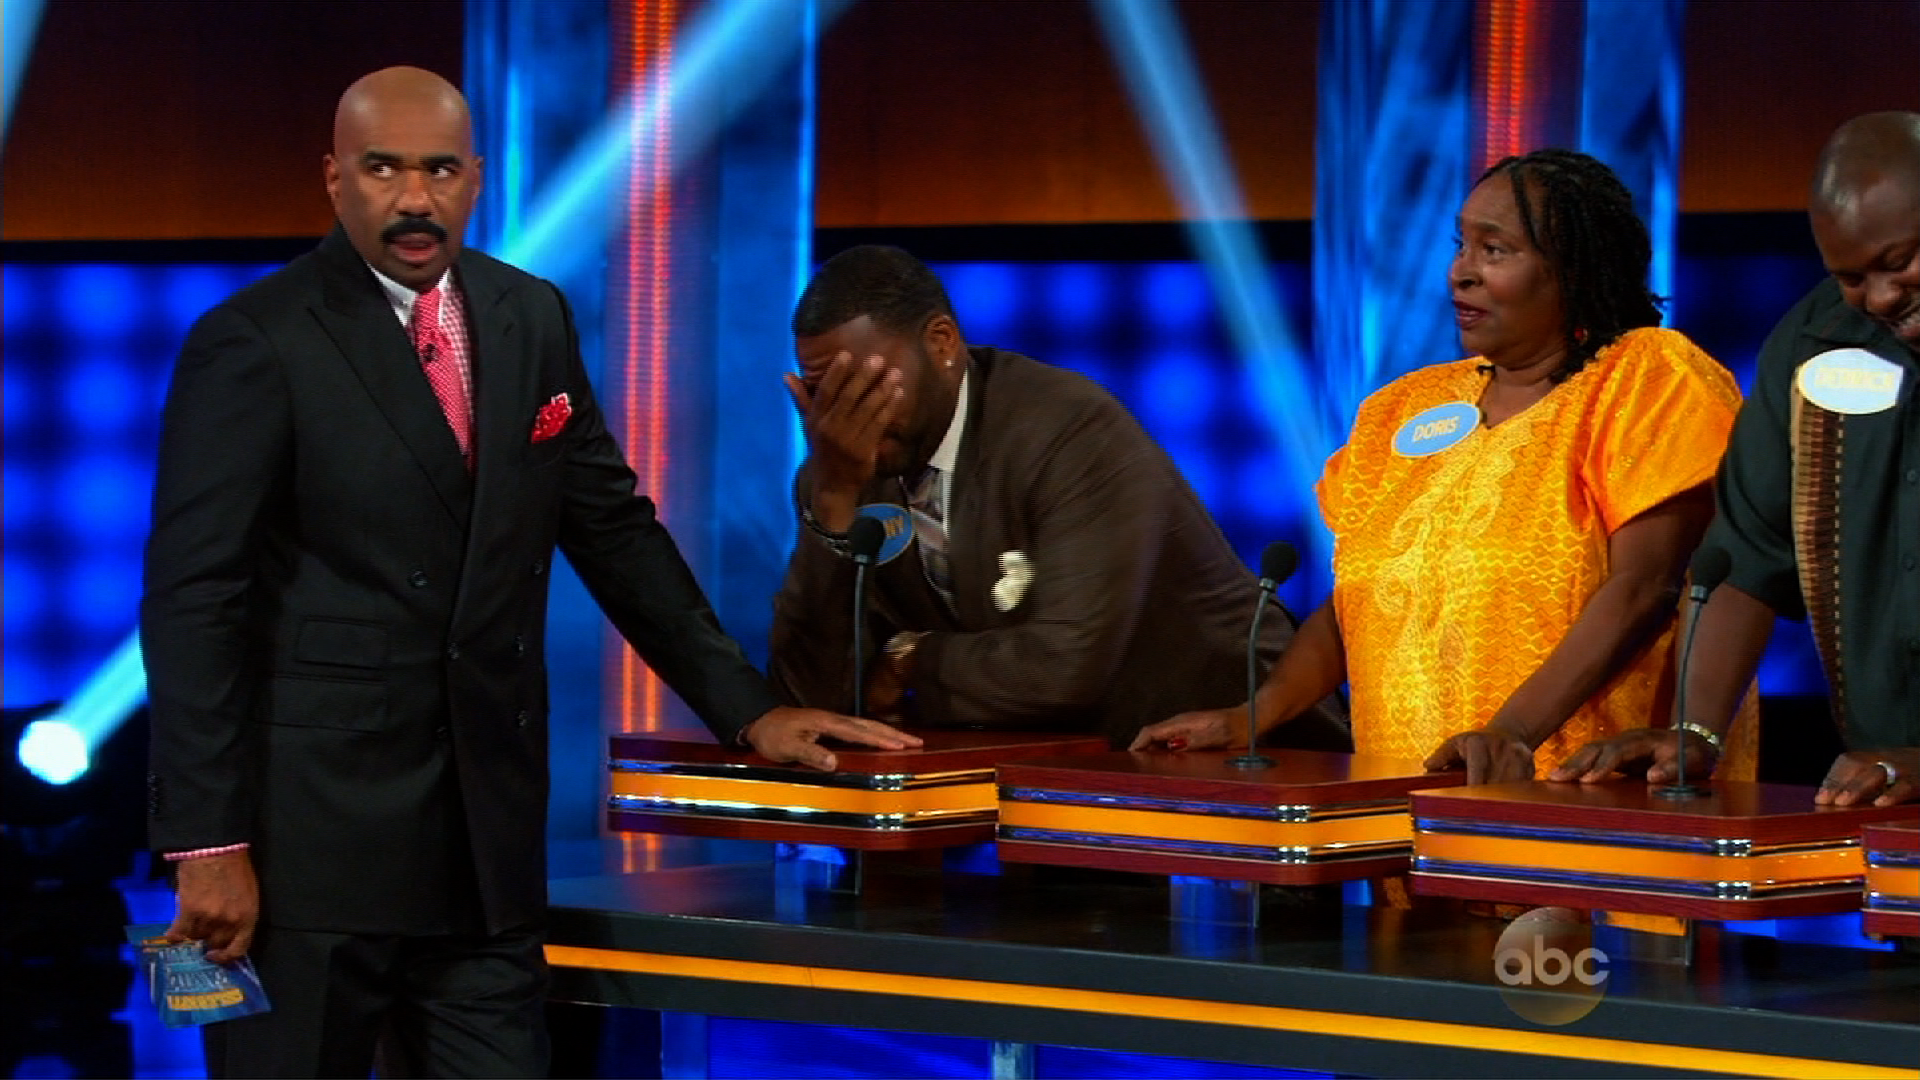 Actor's mom turns heads with 'Family Feud' answer